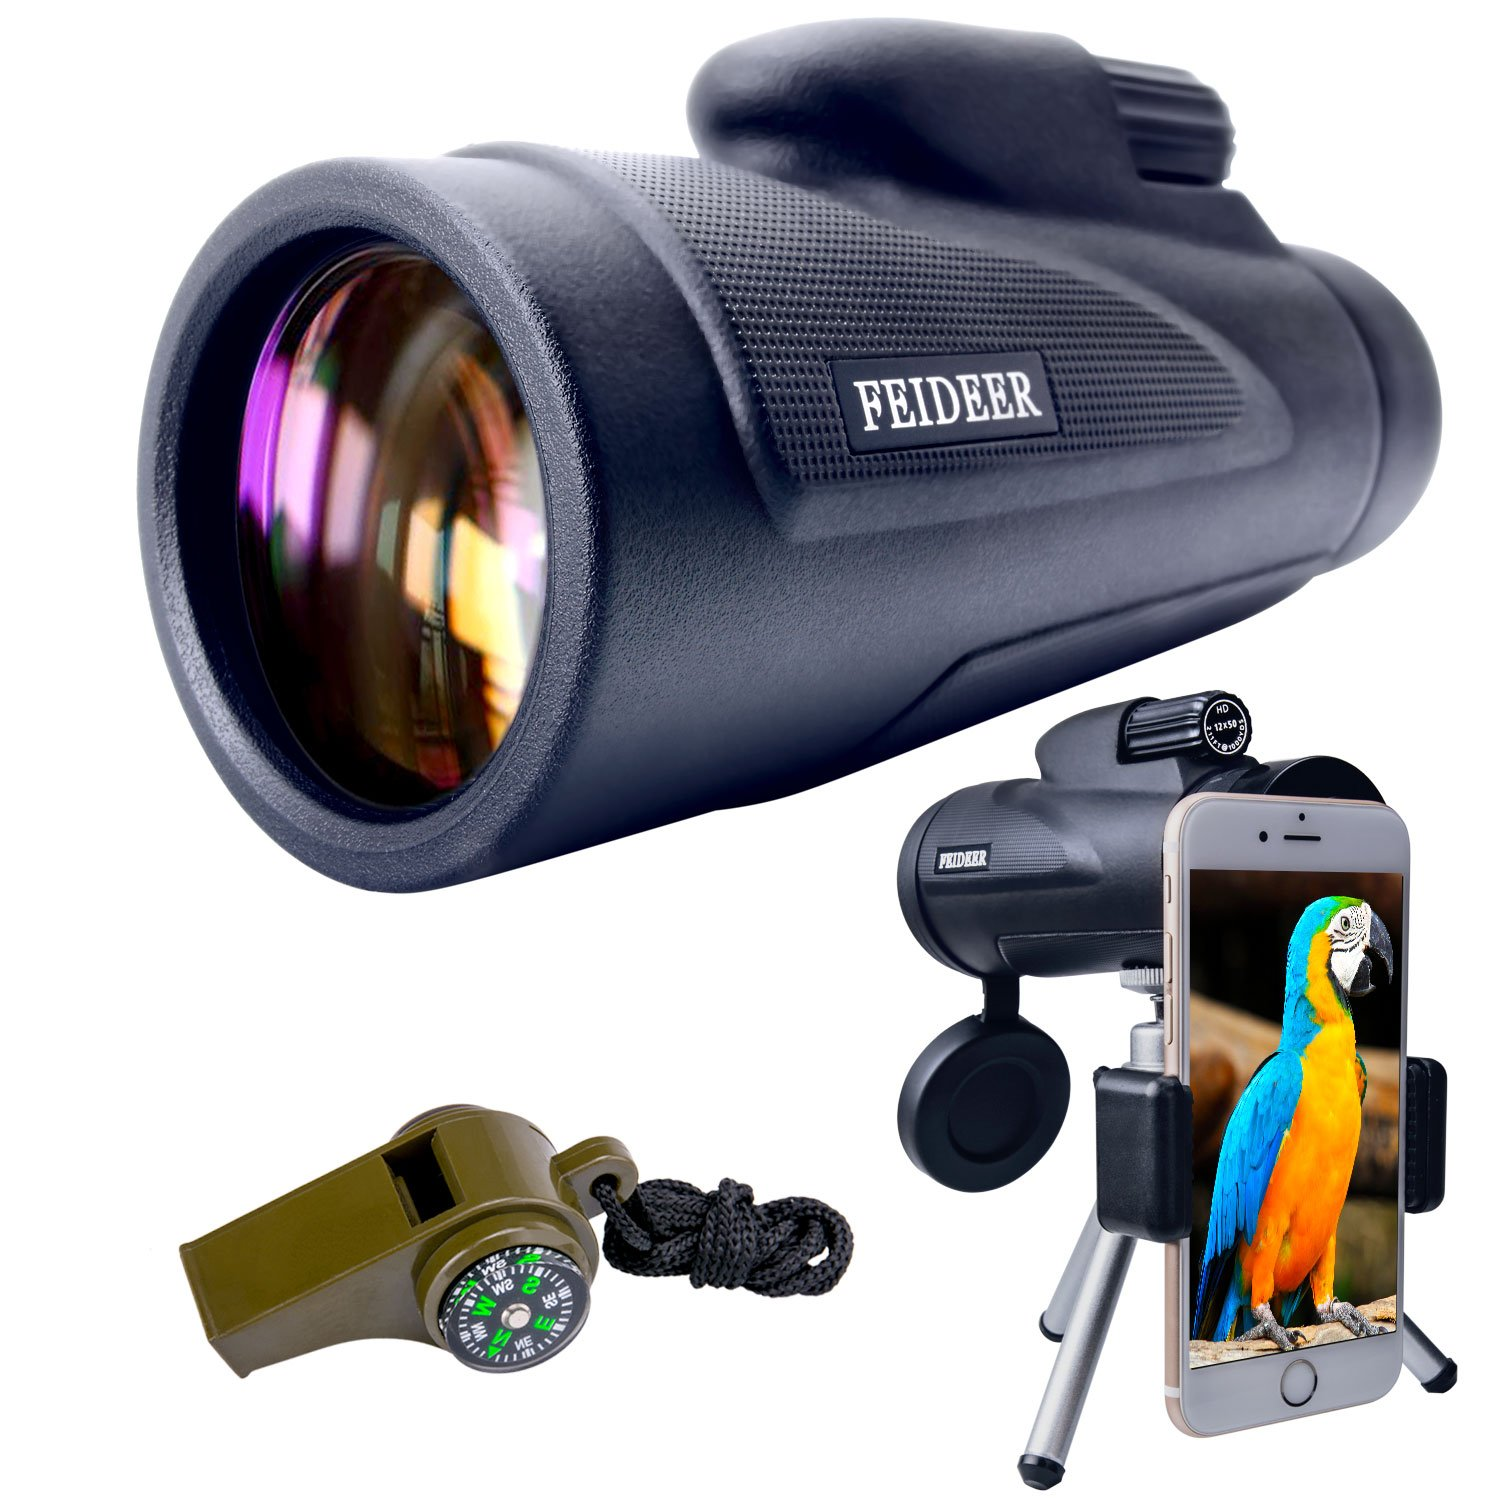 FEIDEER 12x50 Monocular Telescope High-powered HD BAK4 FMC Prism Waterproof Fogproof Shockproof Monoscope With Smartphone Holder and Tripod Low Light Night Vision For Concert Camping Bird watching Etc by FEIDEER